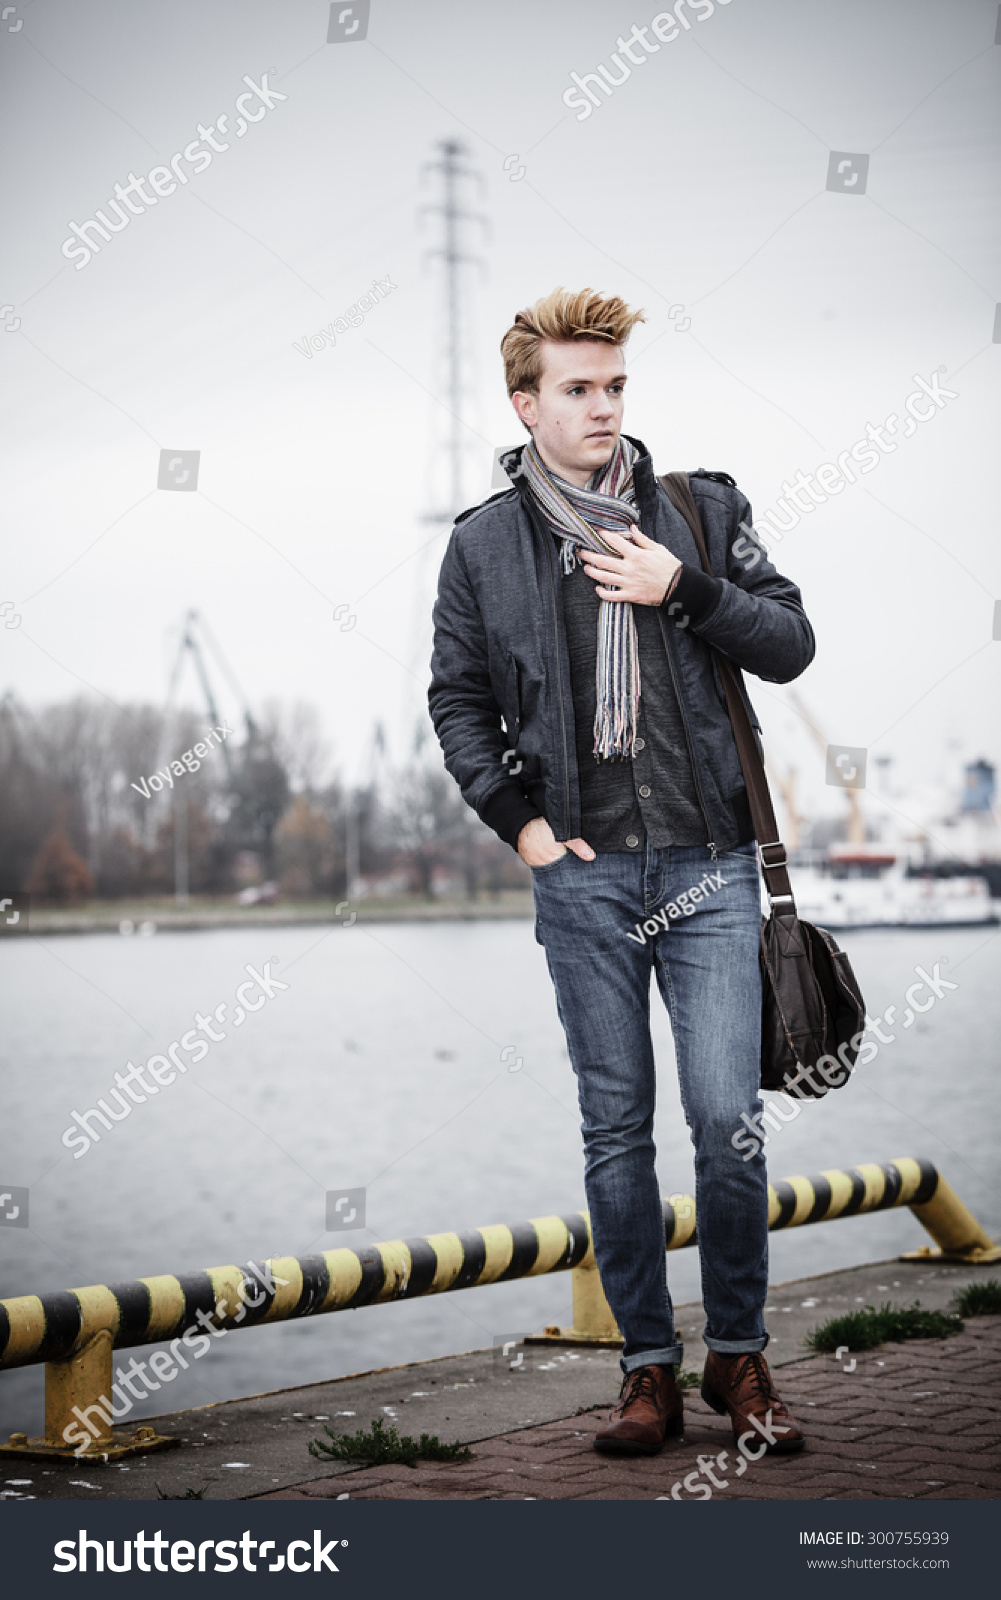 Full Length Young Handsome Man Fashion Model Casual Style With Bag On Street Urban Industrial Background Stock Photo